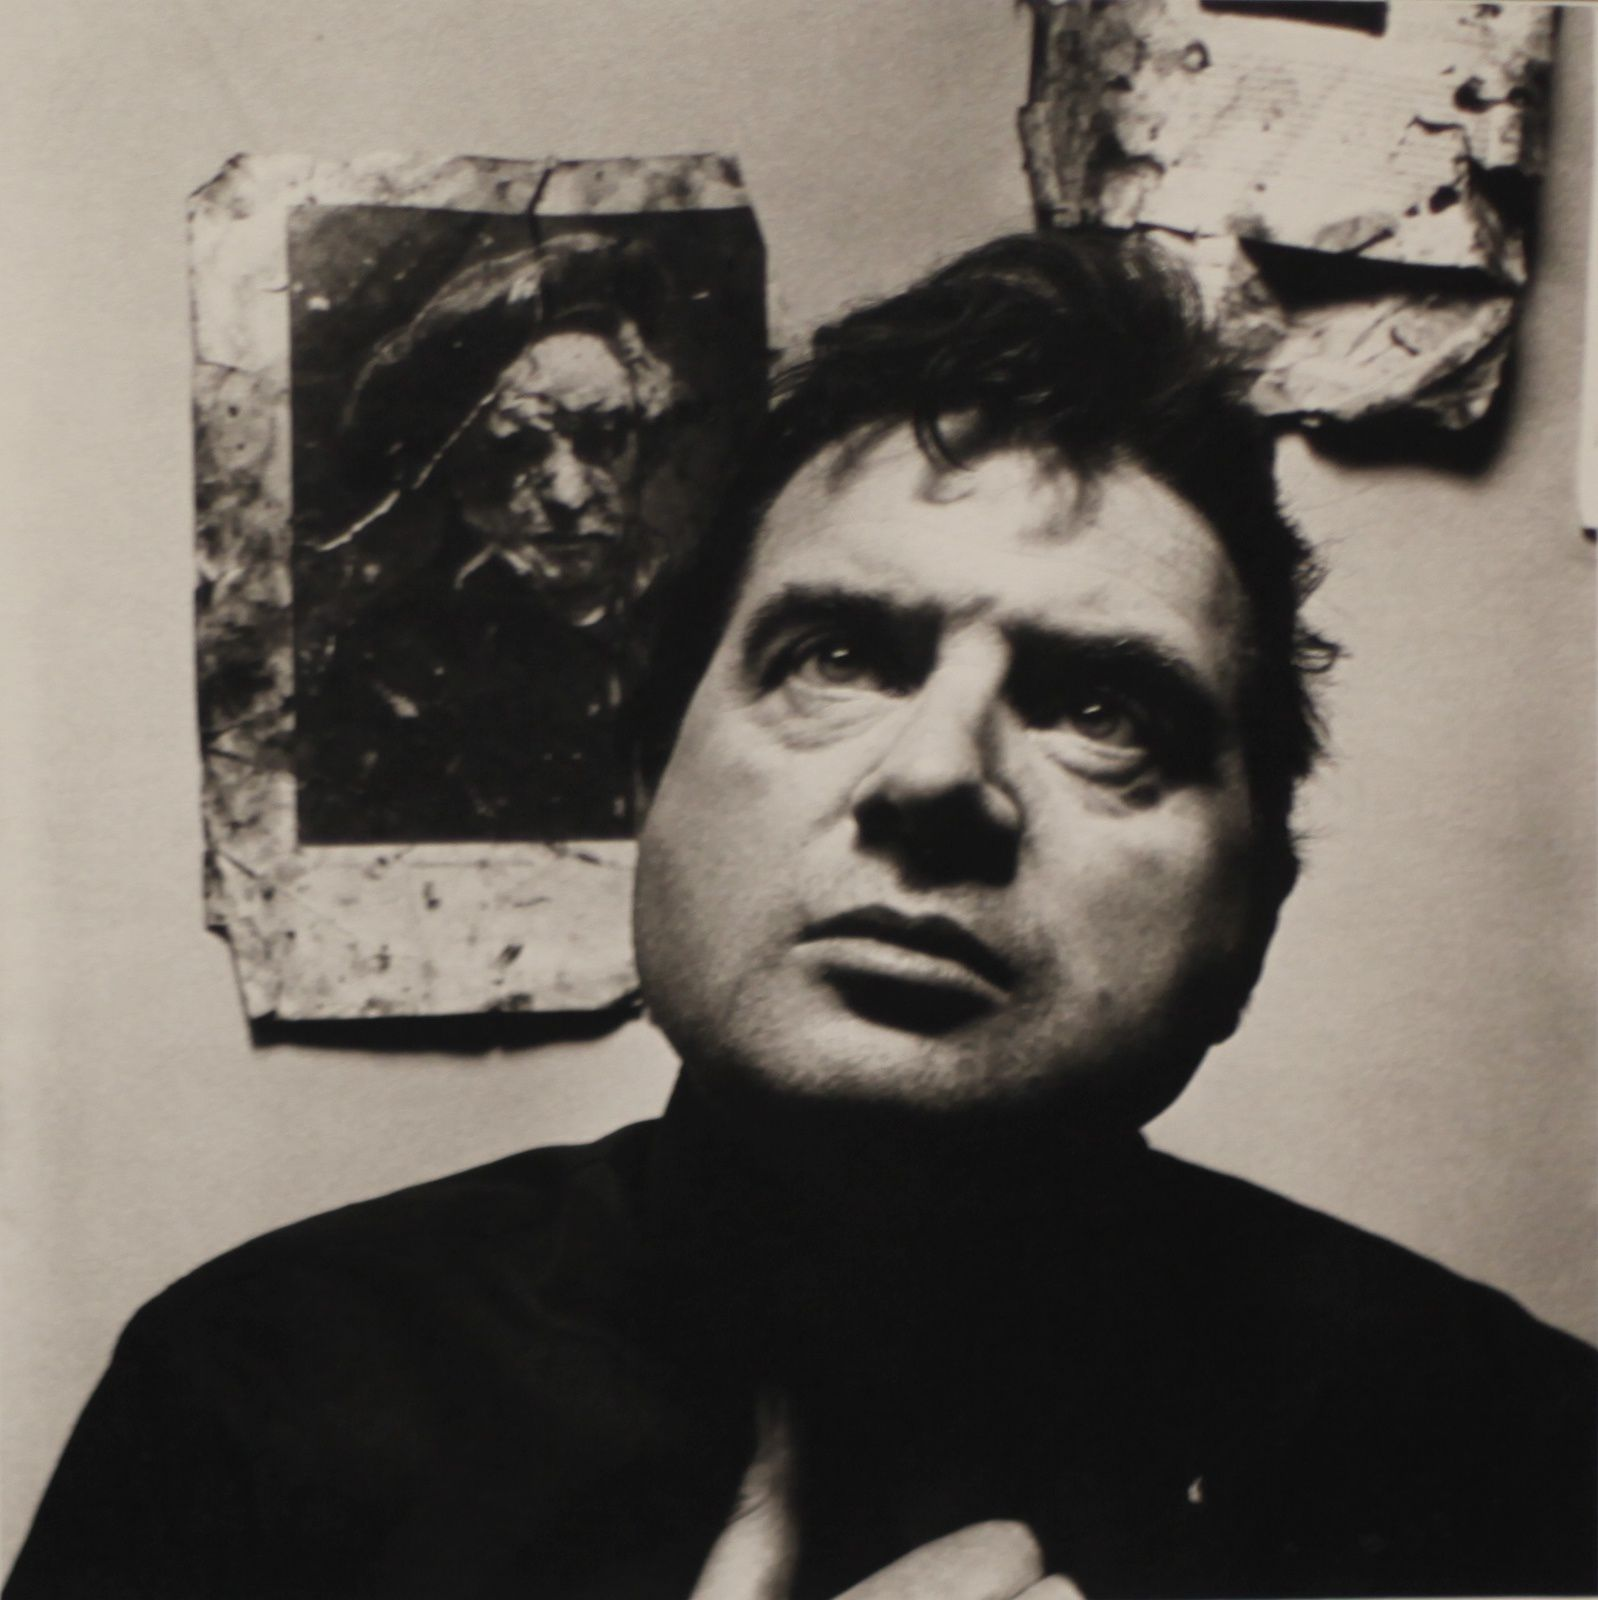 """Francis Bacon, Londres"", 1962 d'Irving PENN - Courtesy The Metropolitan Museum of Art"